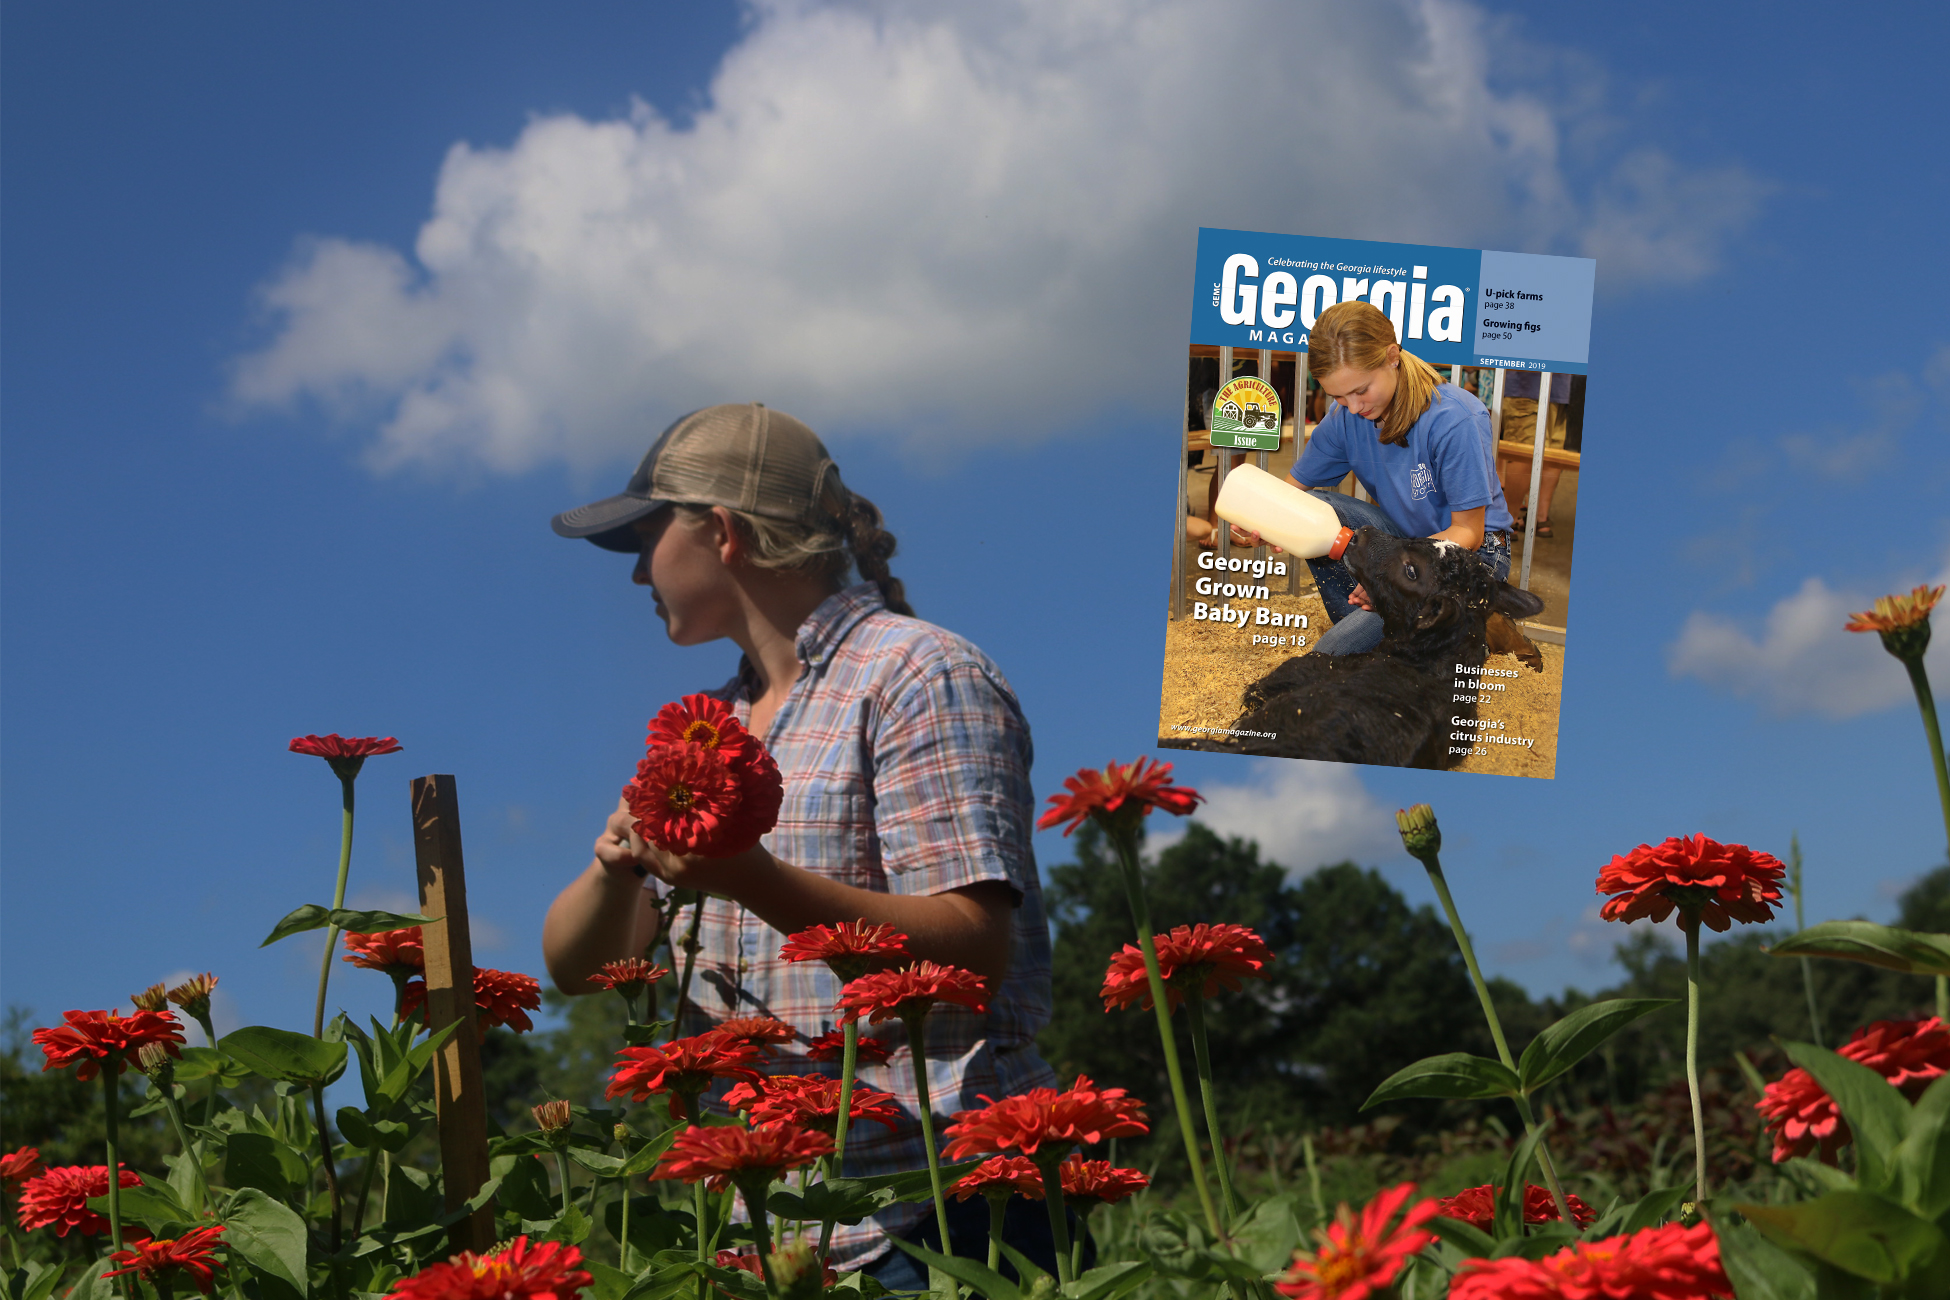 Check out September's Georgia Magazine